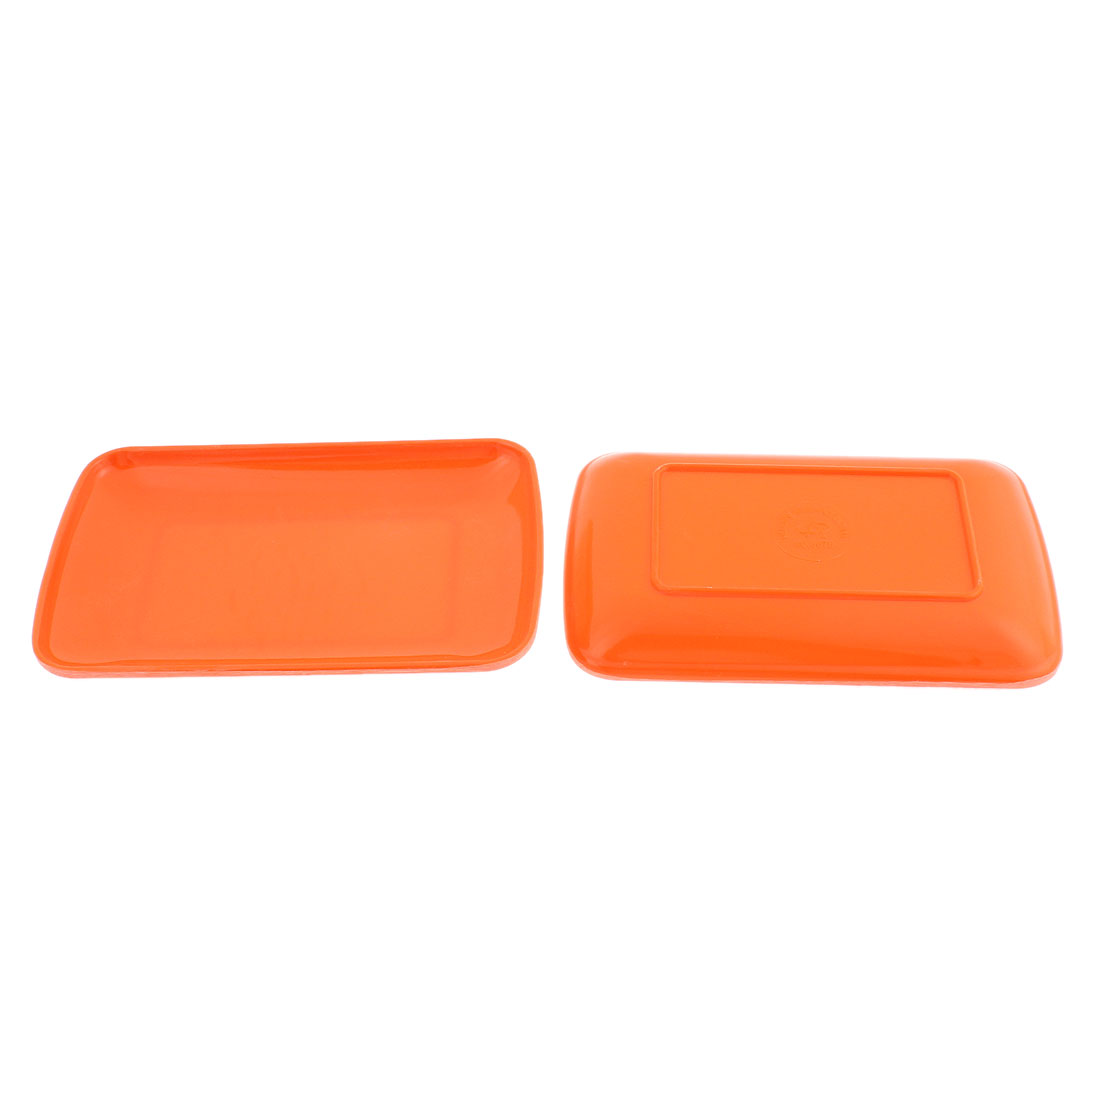 Home Kitchen Rectangle Shaped Lunch Food Dinner Dish Plate Container 19cmx12cm 2 Pcs